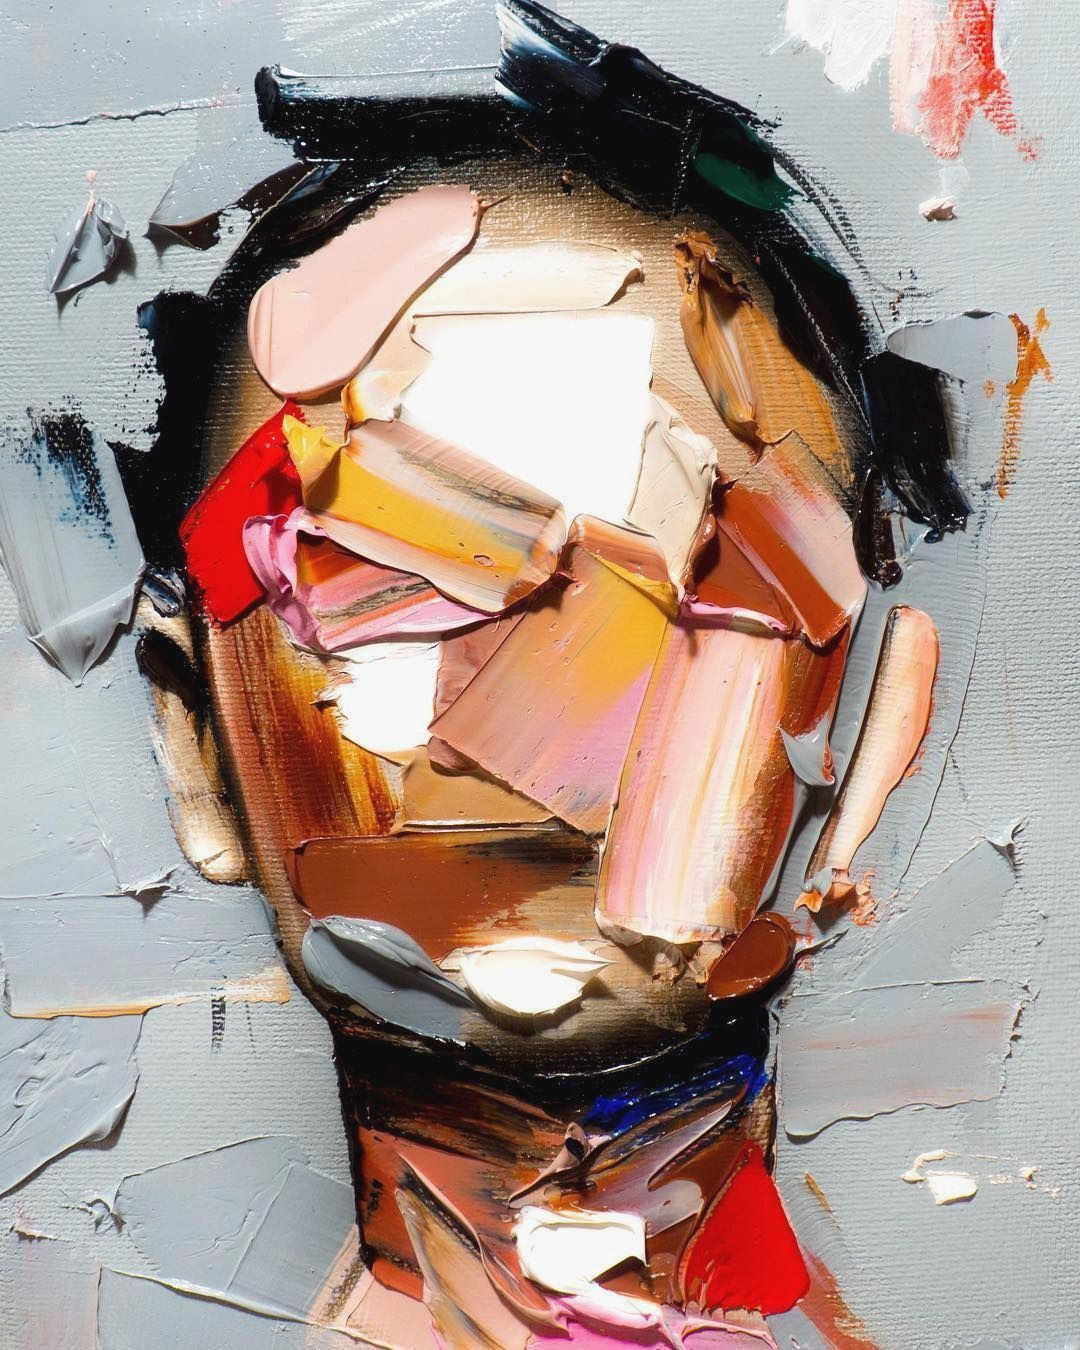 Thick Strokes of Paint Create Featureless Portraits in Abstracted Paintings by Joseph Lee Colossal abstractart - #abstractart